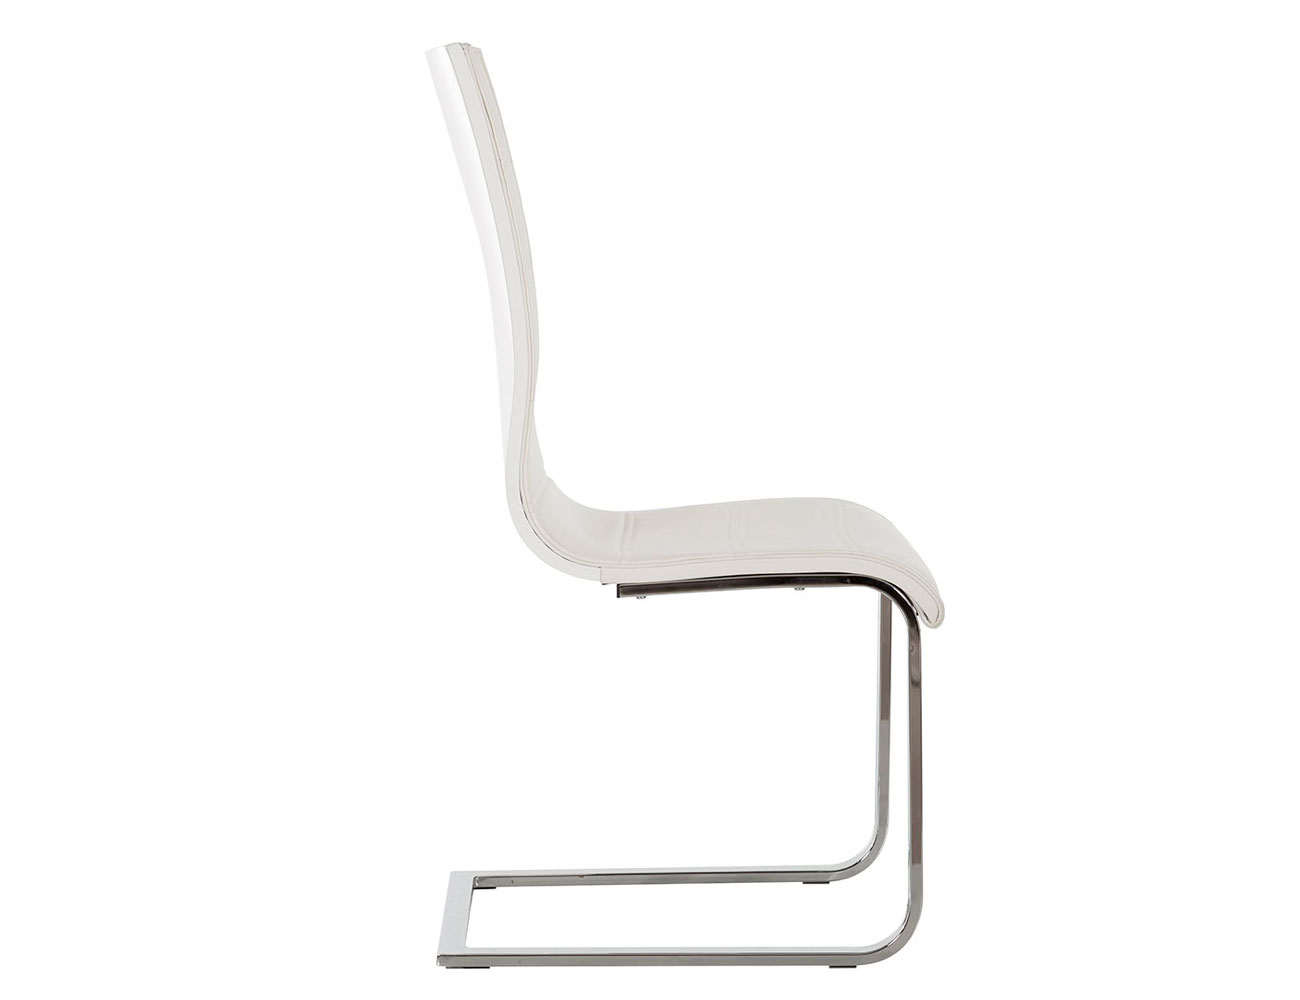 Silla polipiel rebote blanco brillo 5